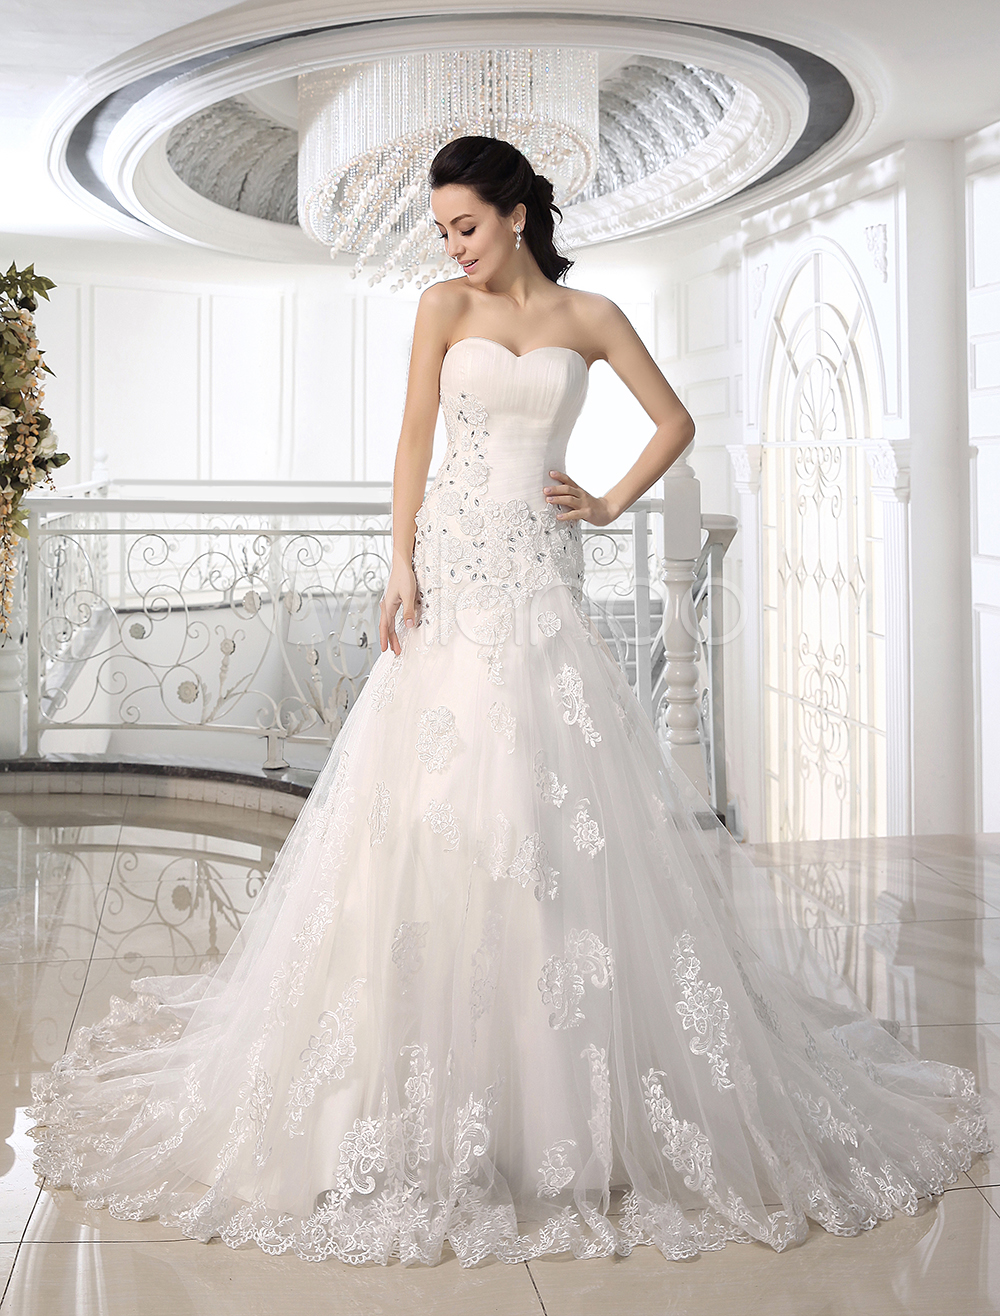 Buy Strapless Wedding Dresses Mermaid Lace Applique fishtail Bridal Gown Rhinestones Dropped Waist Court Train Bridal Dress for $228.94 in Milanoo store